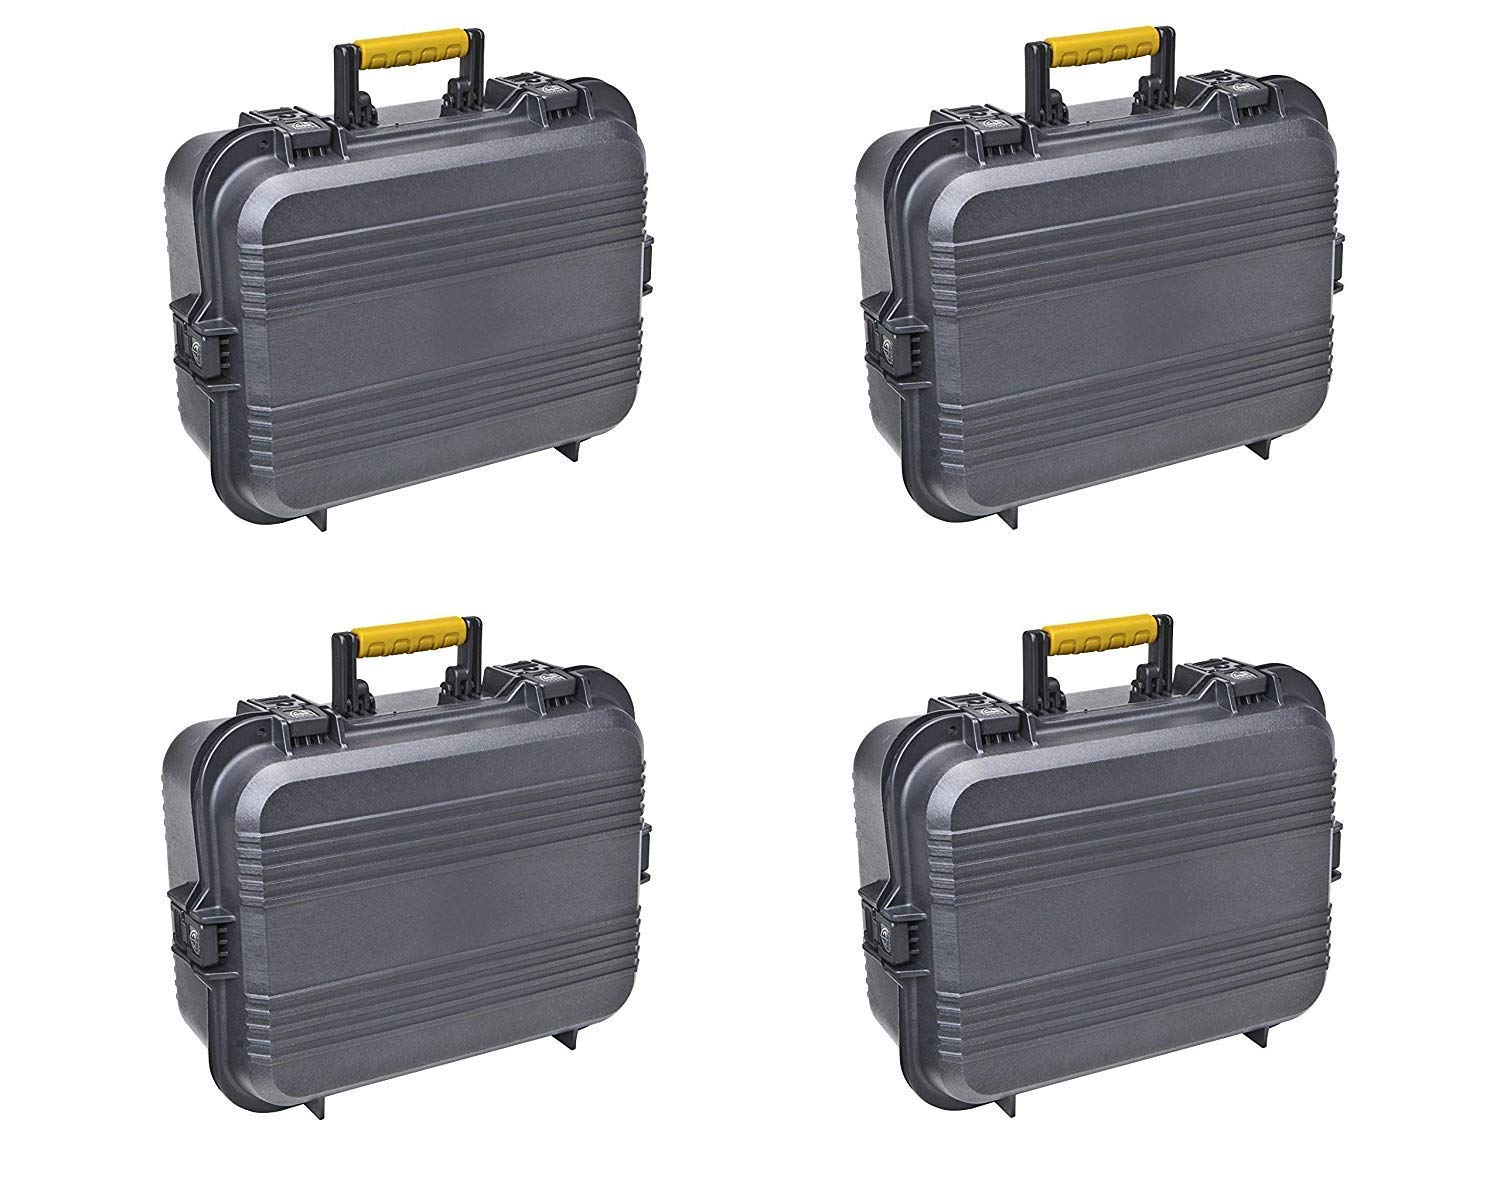 Plano 108031 AW XL Pistol/Accessories Case Black (Pack of 4) by Plano